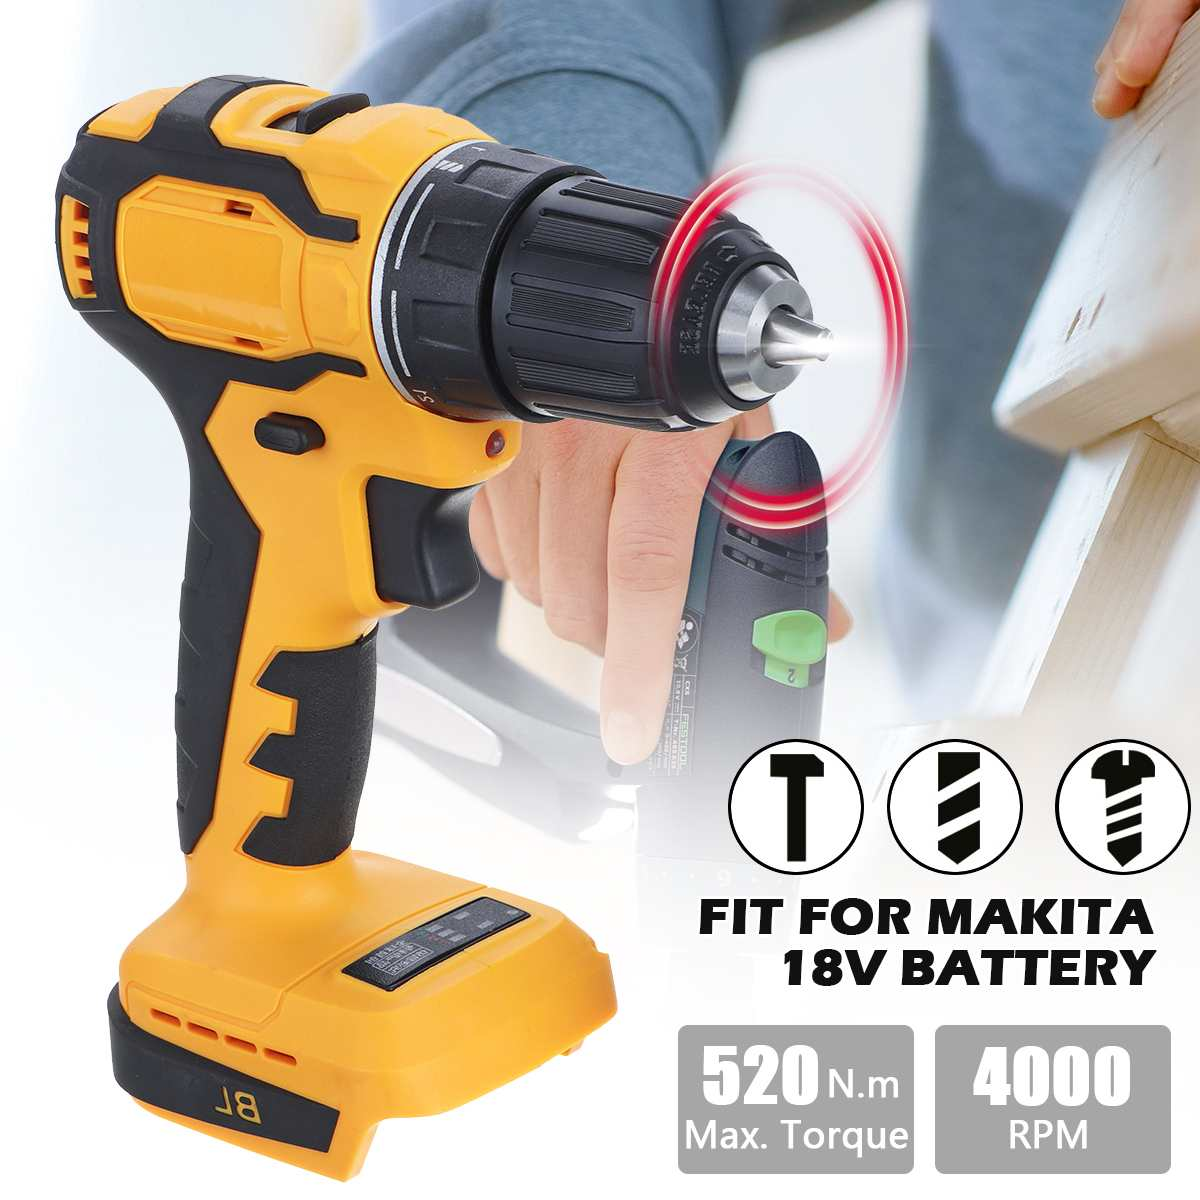 no battery  Professional Cordless Drill Power Tools 520Nm Cordless Screwdriver Drills Fit For Makita 18V Battery